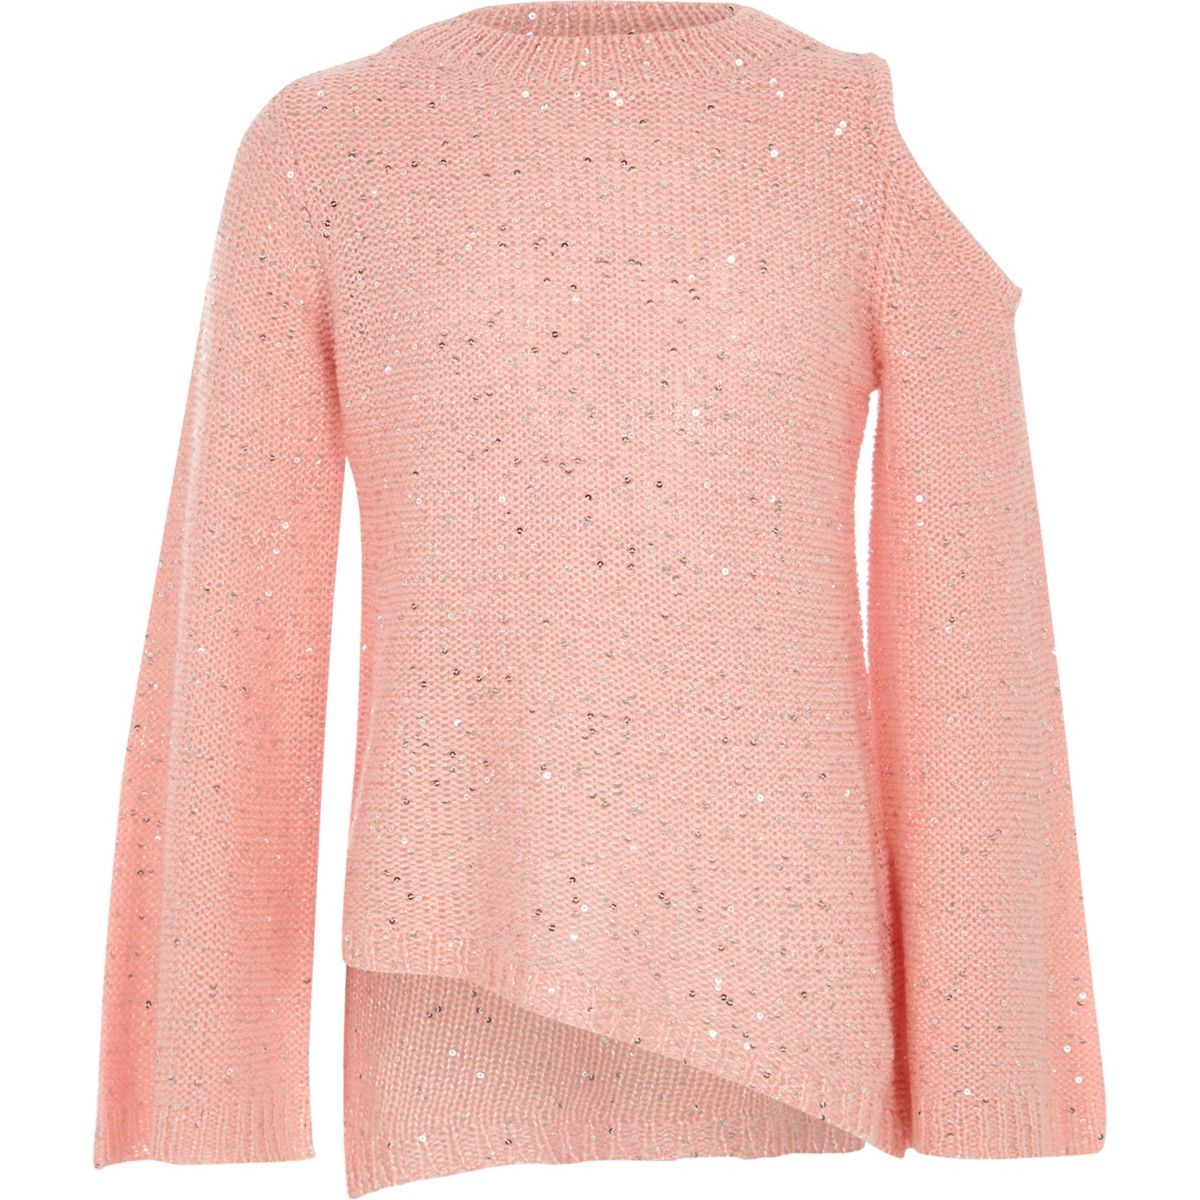 Girls pink sequin cold shoulder sweater - Cardigans / Sweaters ...